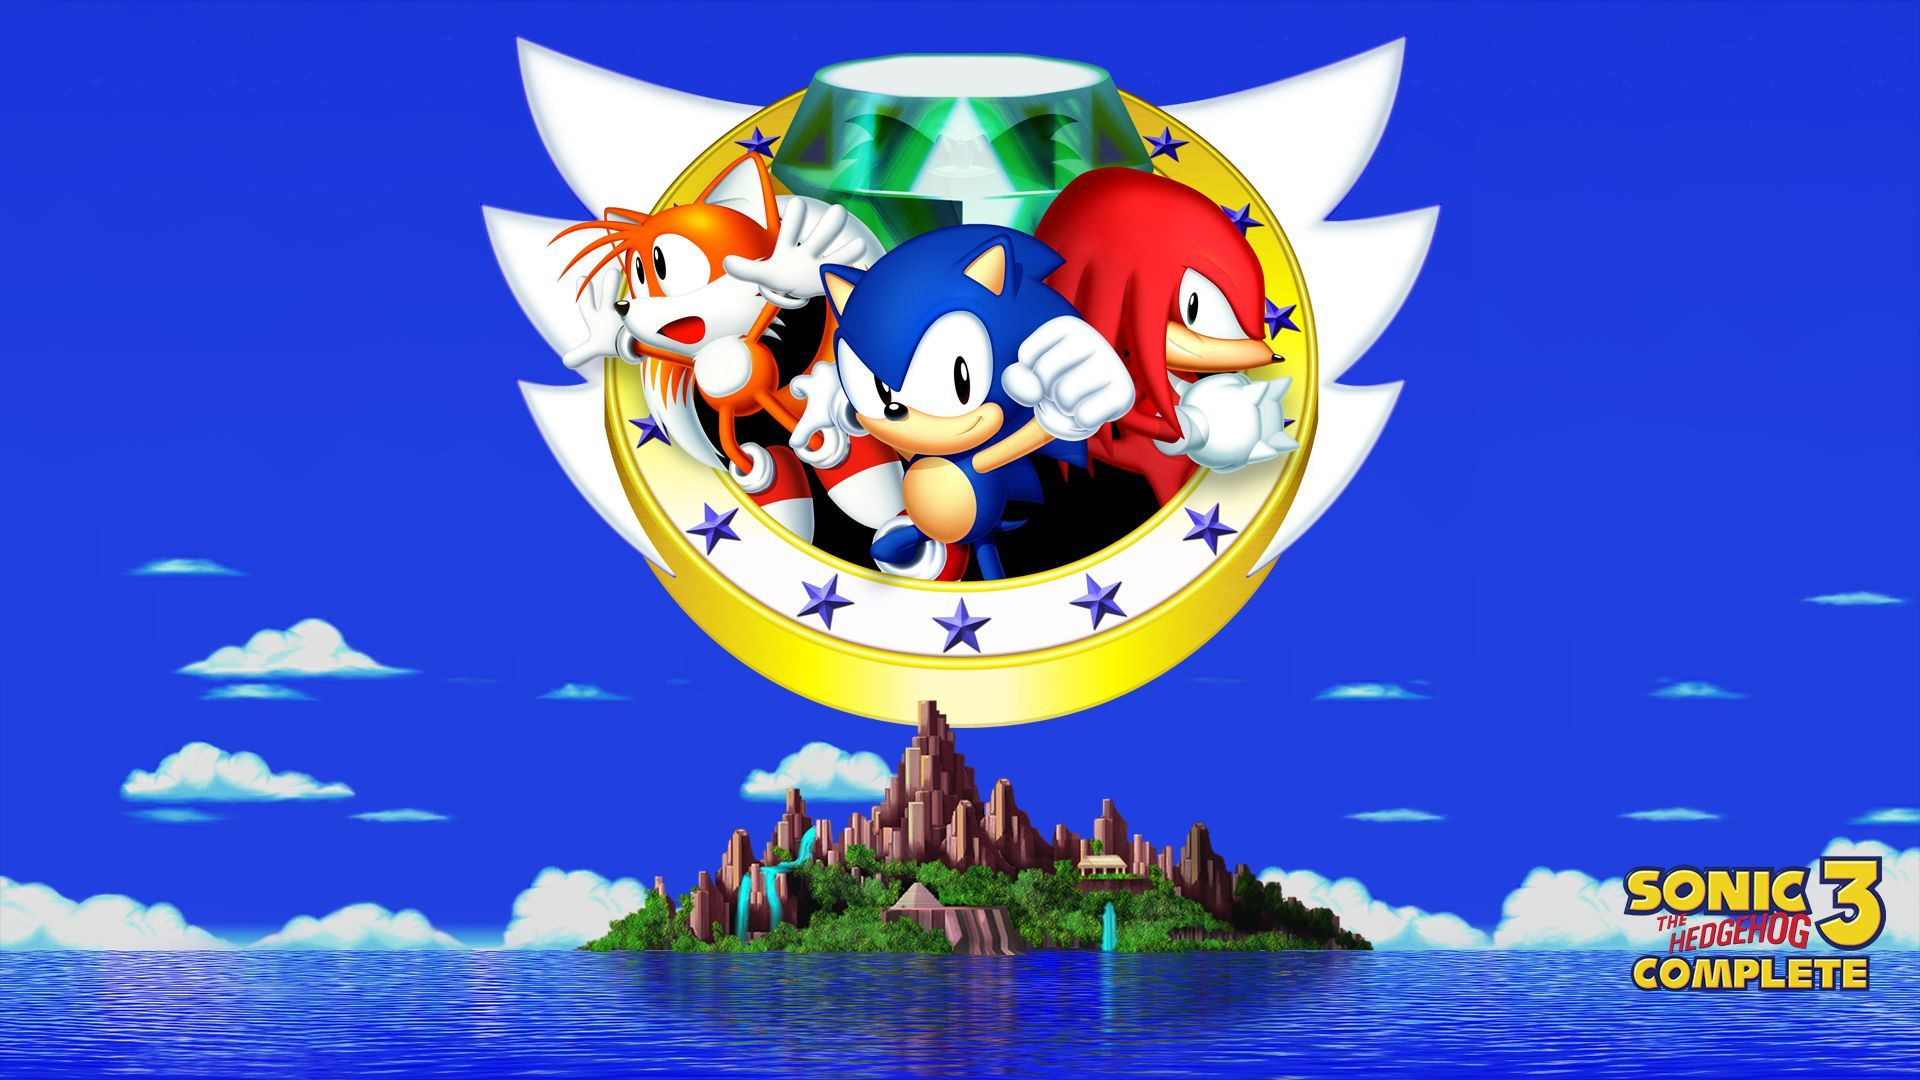 Sonic The Hedgehog Backgrounds High Quality Aniversario